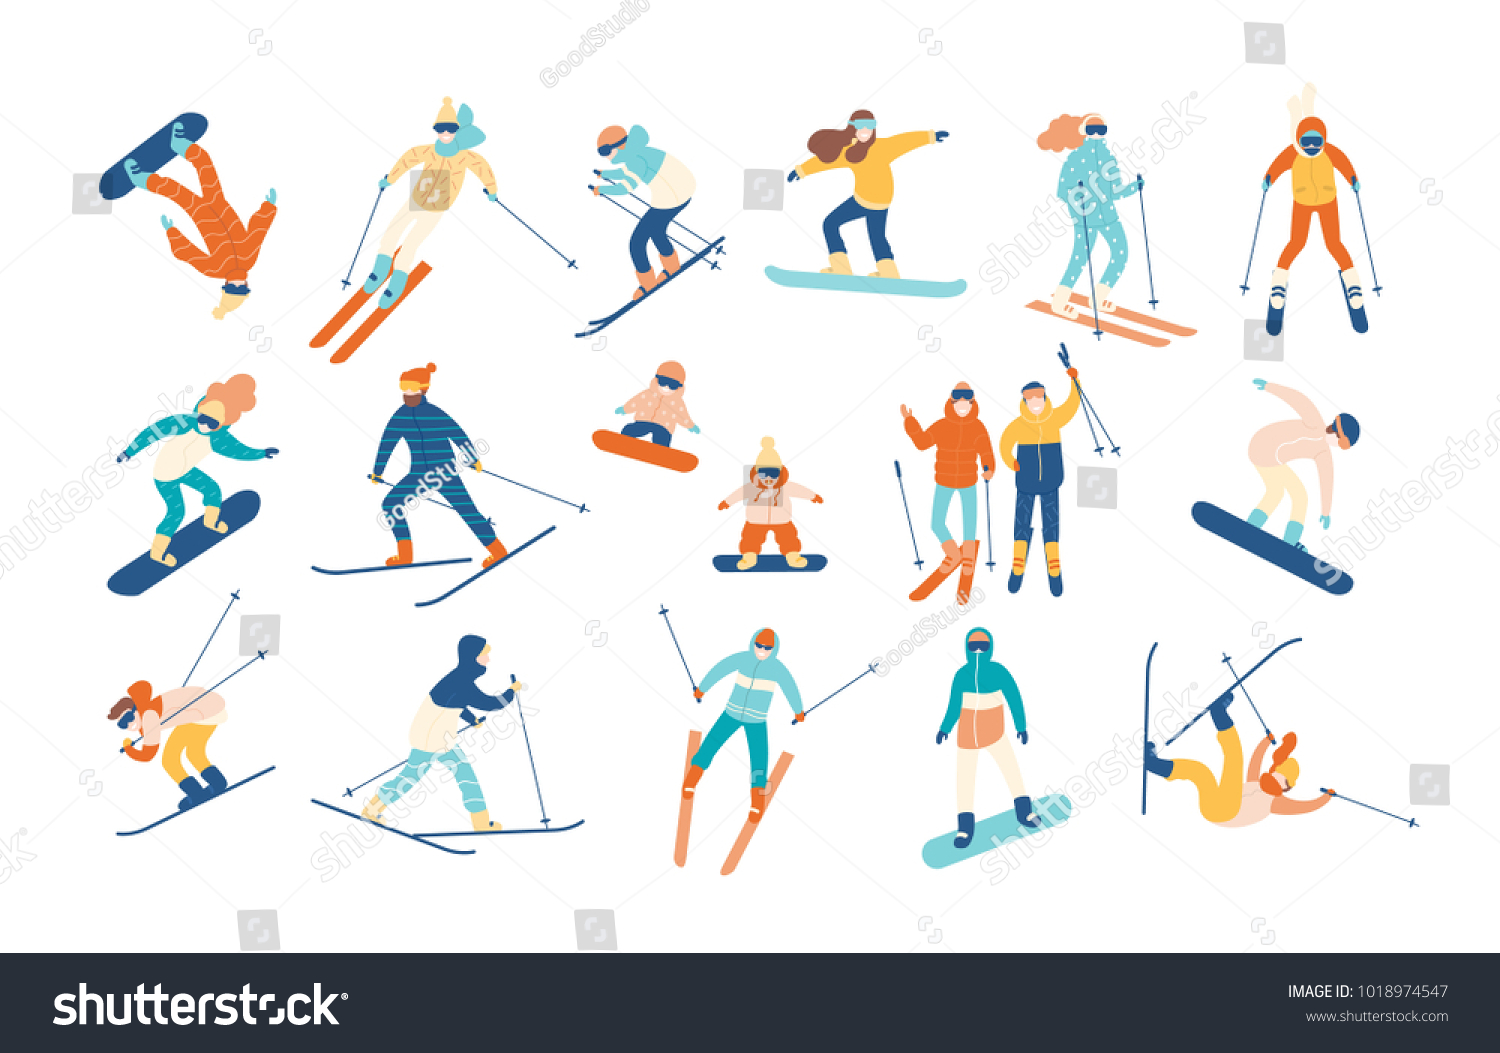 e46d80141039 Adult people and children dressed in winter clothing snowboarding and skiing.  Male and female cartoon